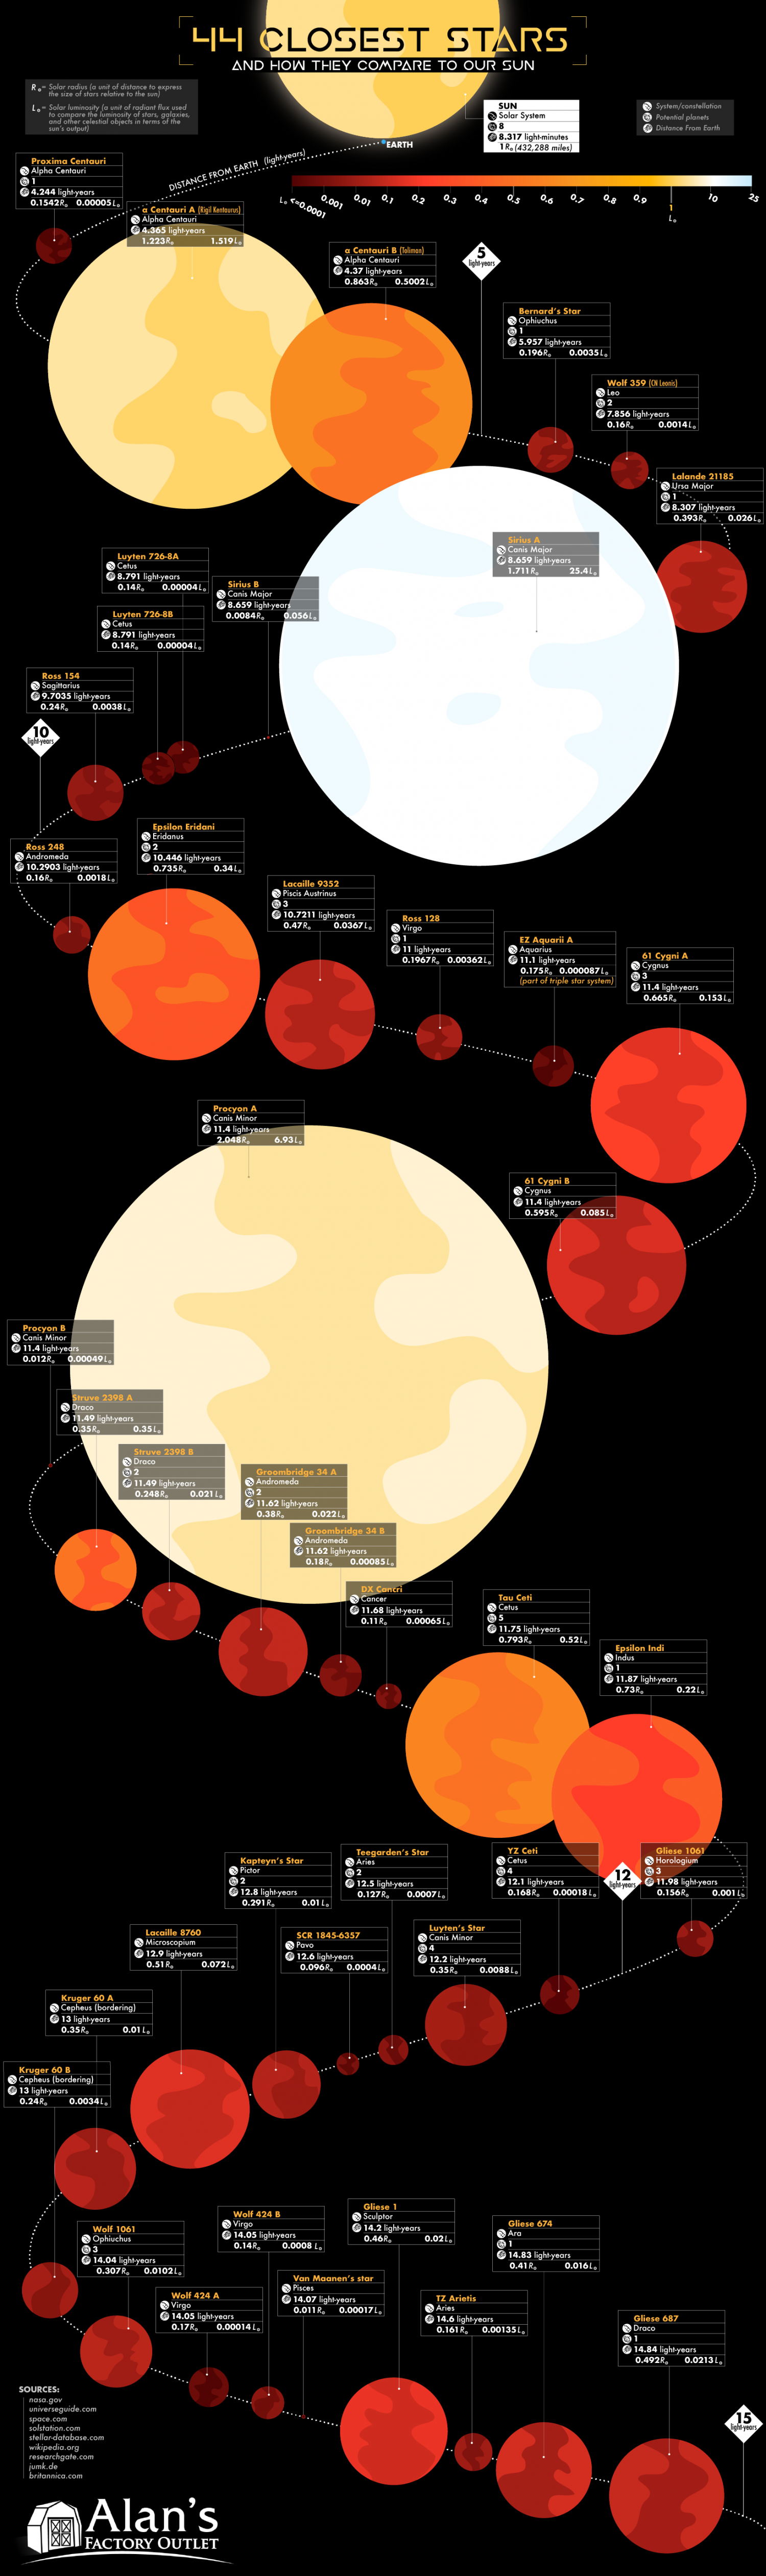 The 44 Closest Stars and How They Compare to Our Sun Infographic